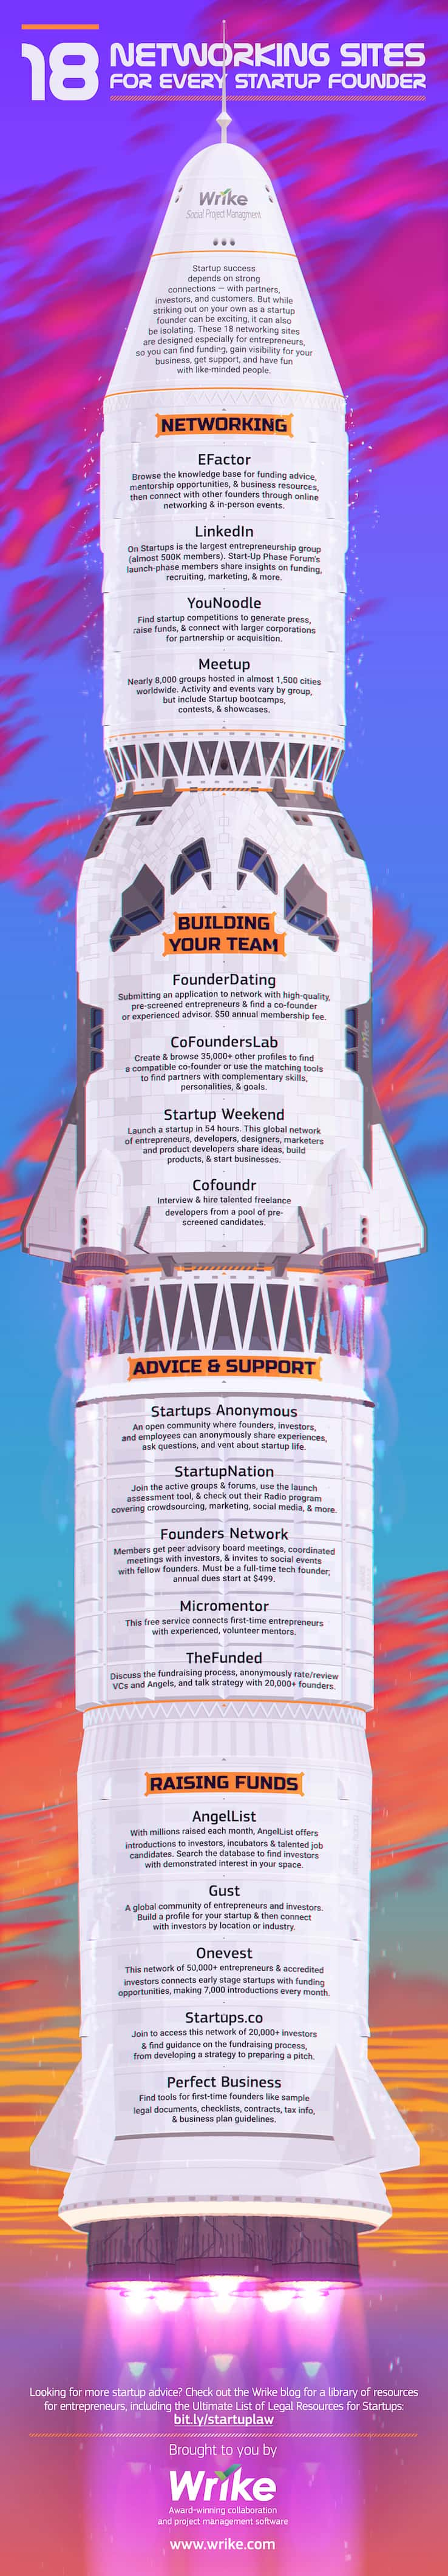 18 Top Networking Sites for Startup Founders (#Infographic)